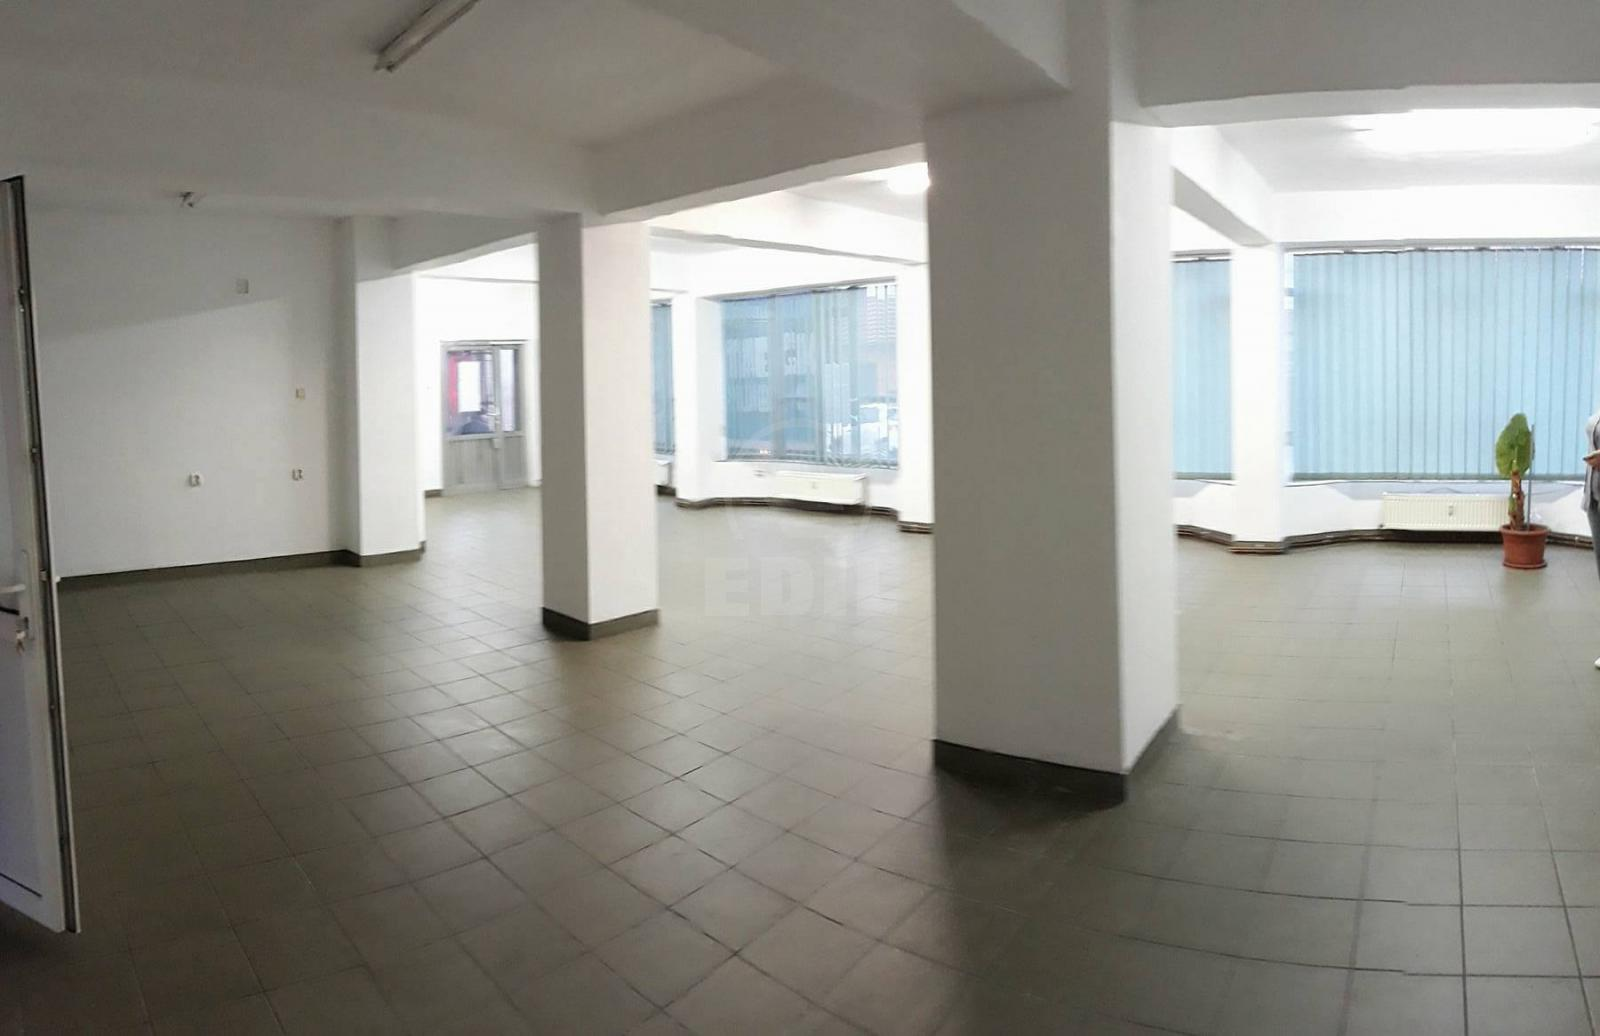 Commercial space for rent a room, SCCJ282965-1